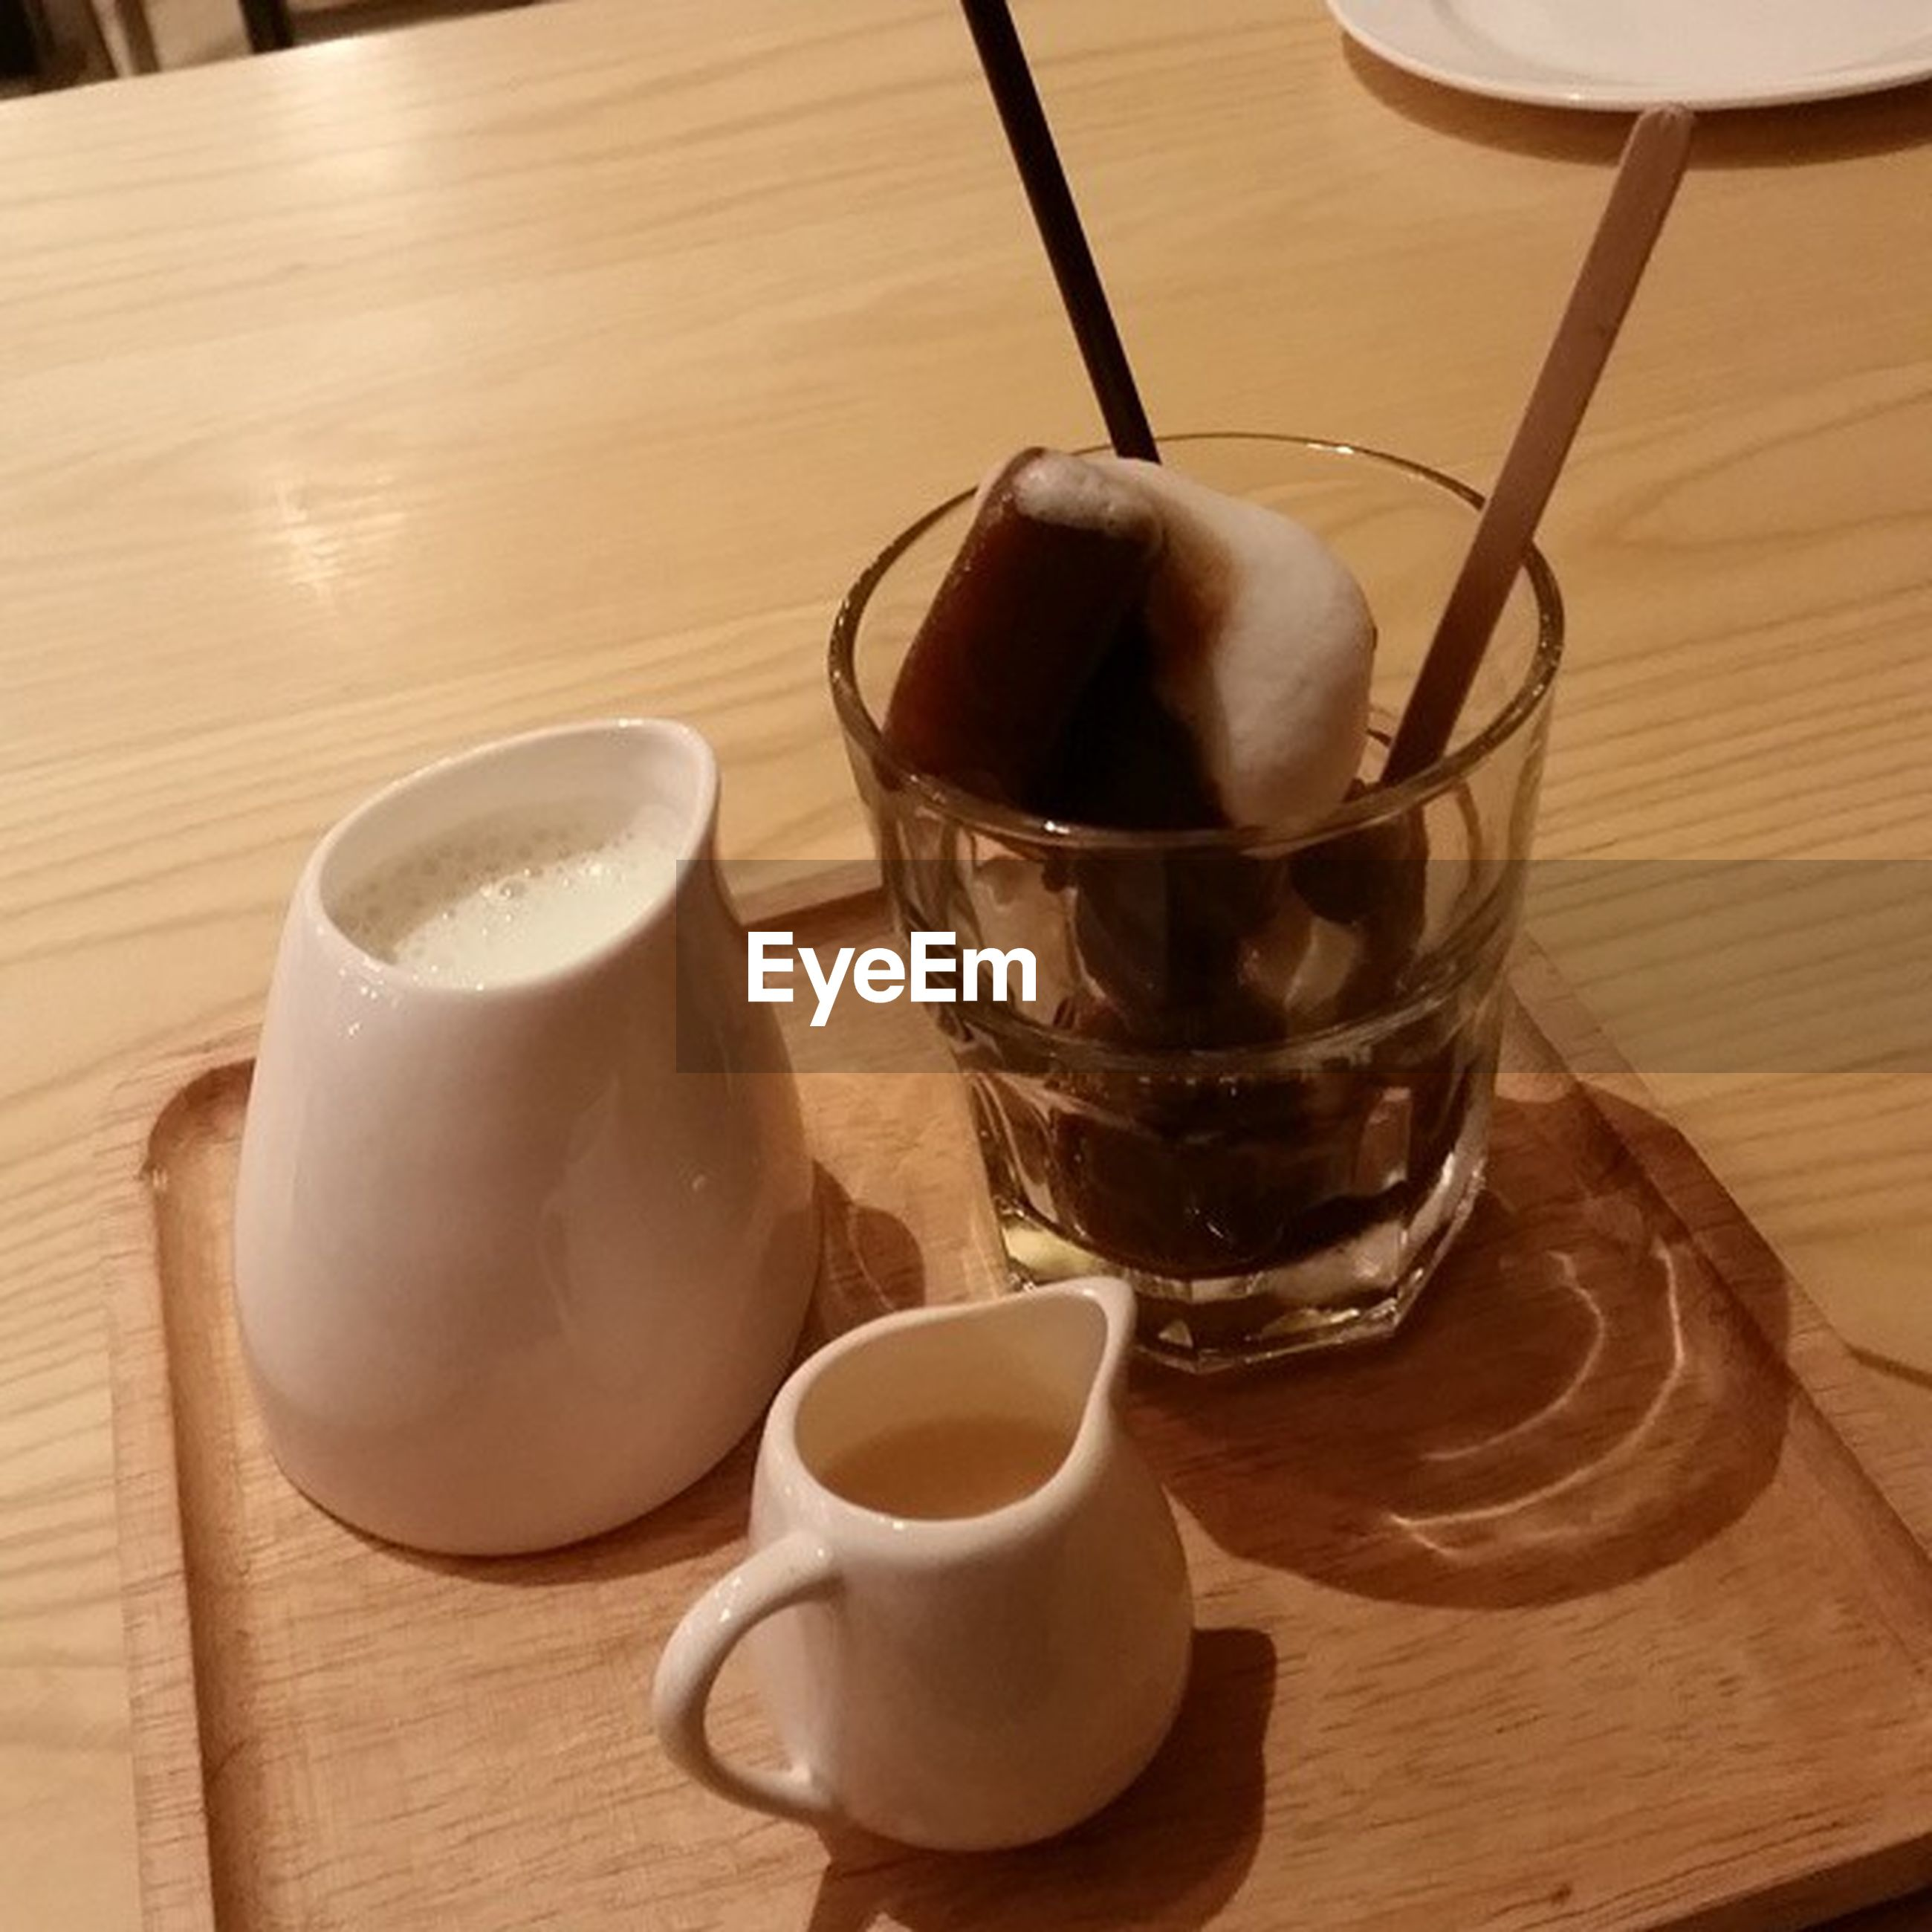 table, food and drink, indoors, drink, refreshment, coffee cup, still life, coffee - drink, freshness, wood - material, spoon, saucer, wooden, high angle view, coffee, close-up, cup, no people, healthy eating, frothy drink